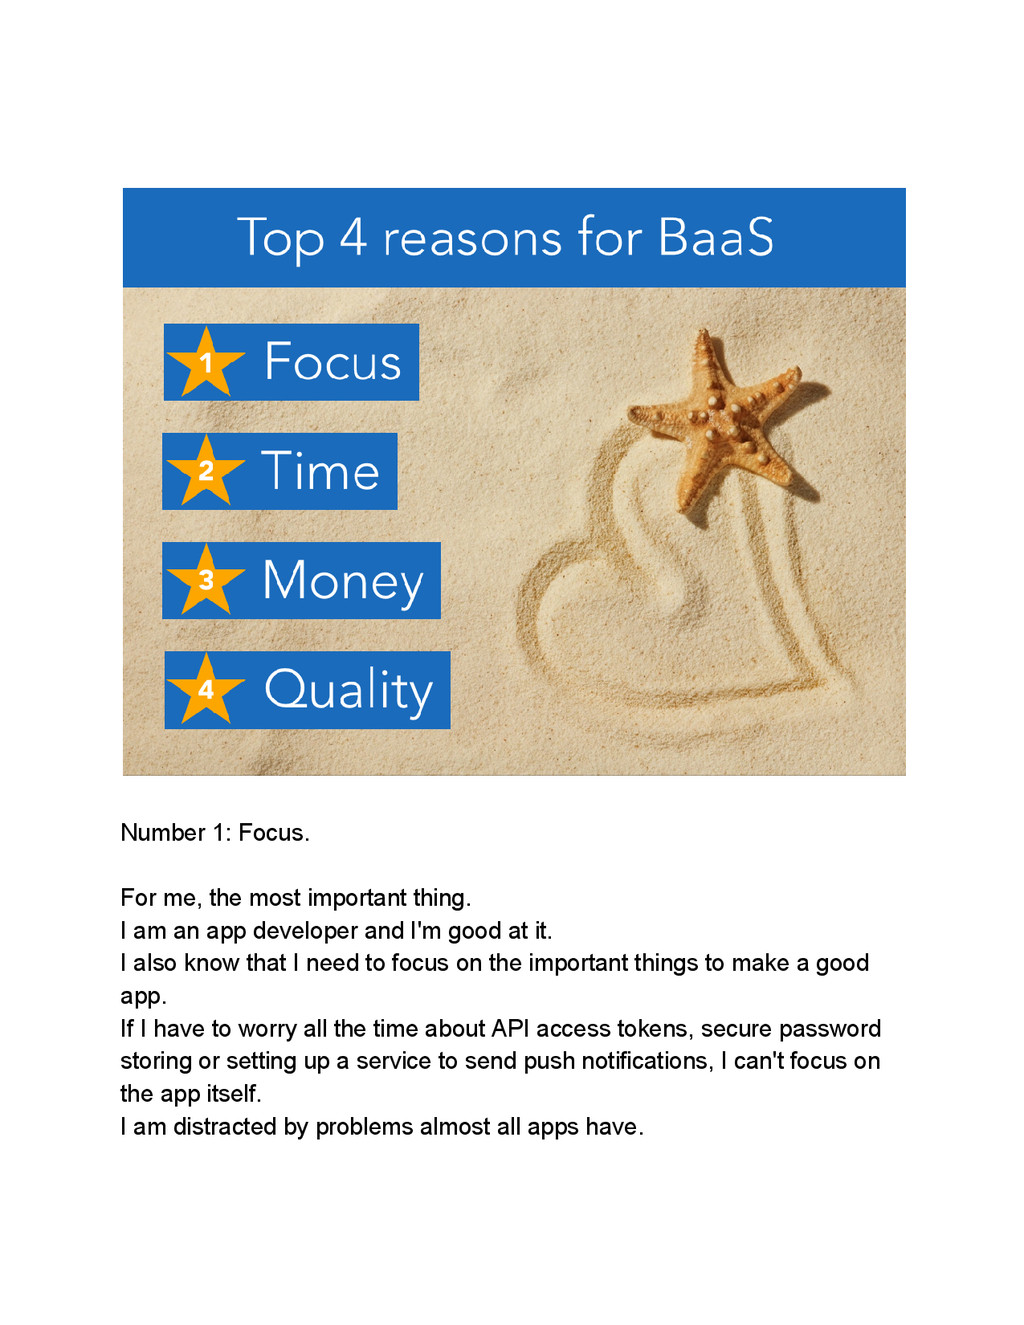 Number 1: Focus. For me, the most important thi...